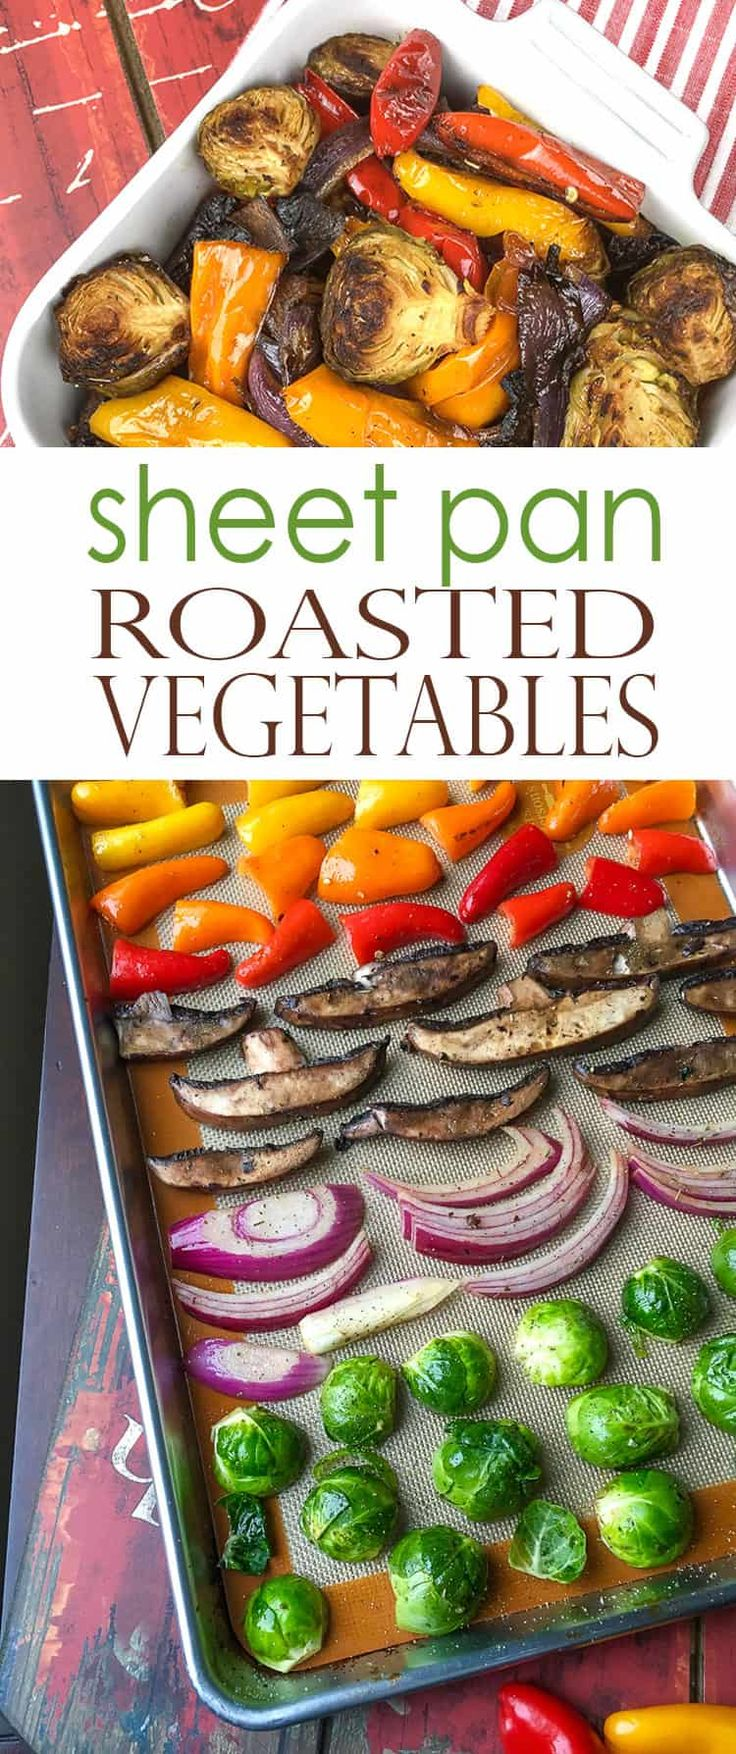 Mediterranean Roasted Vegetables taste INCREDIBLE! These sheet pan roasted vegetables are roasted to perfection to bring out their natural sweetness. Season with Herbs de Provence or Italian seasoning. #sheetpan #roastedvegetables #healthydinner #mediterraneanroastedvegetables